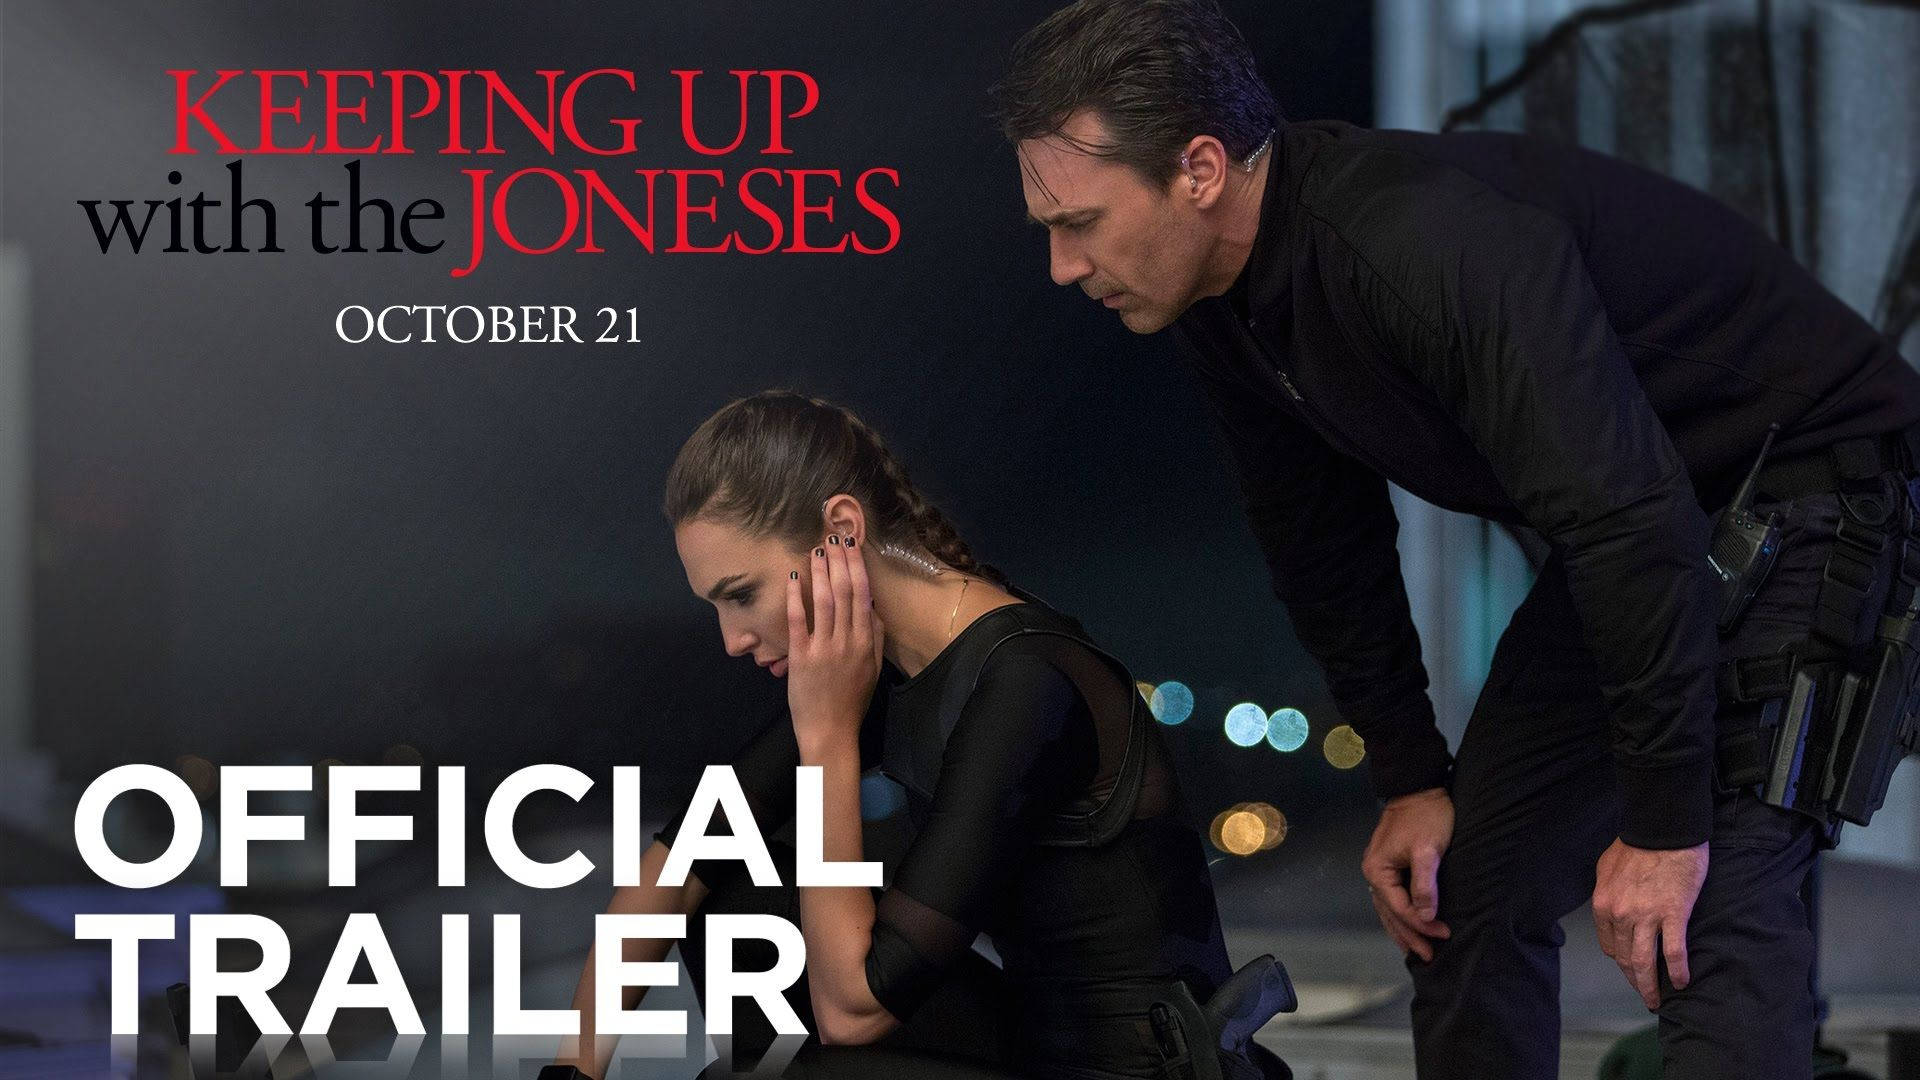 KEEPING UP WITH THE JONESES starring Zach Galifianakis